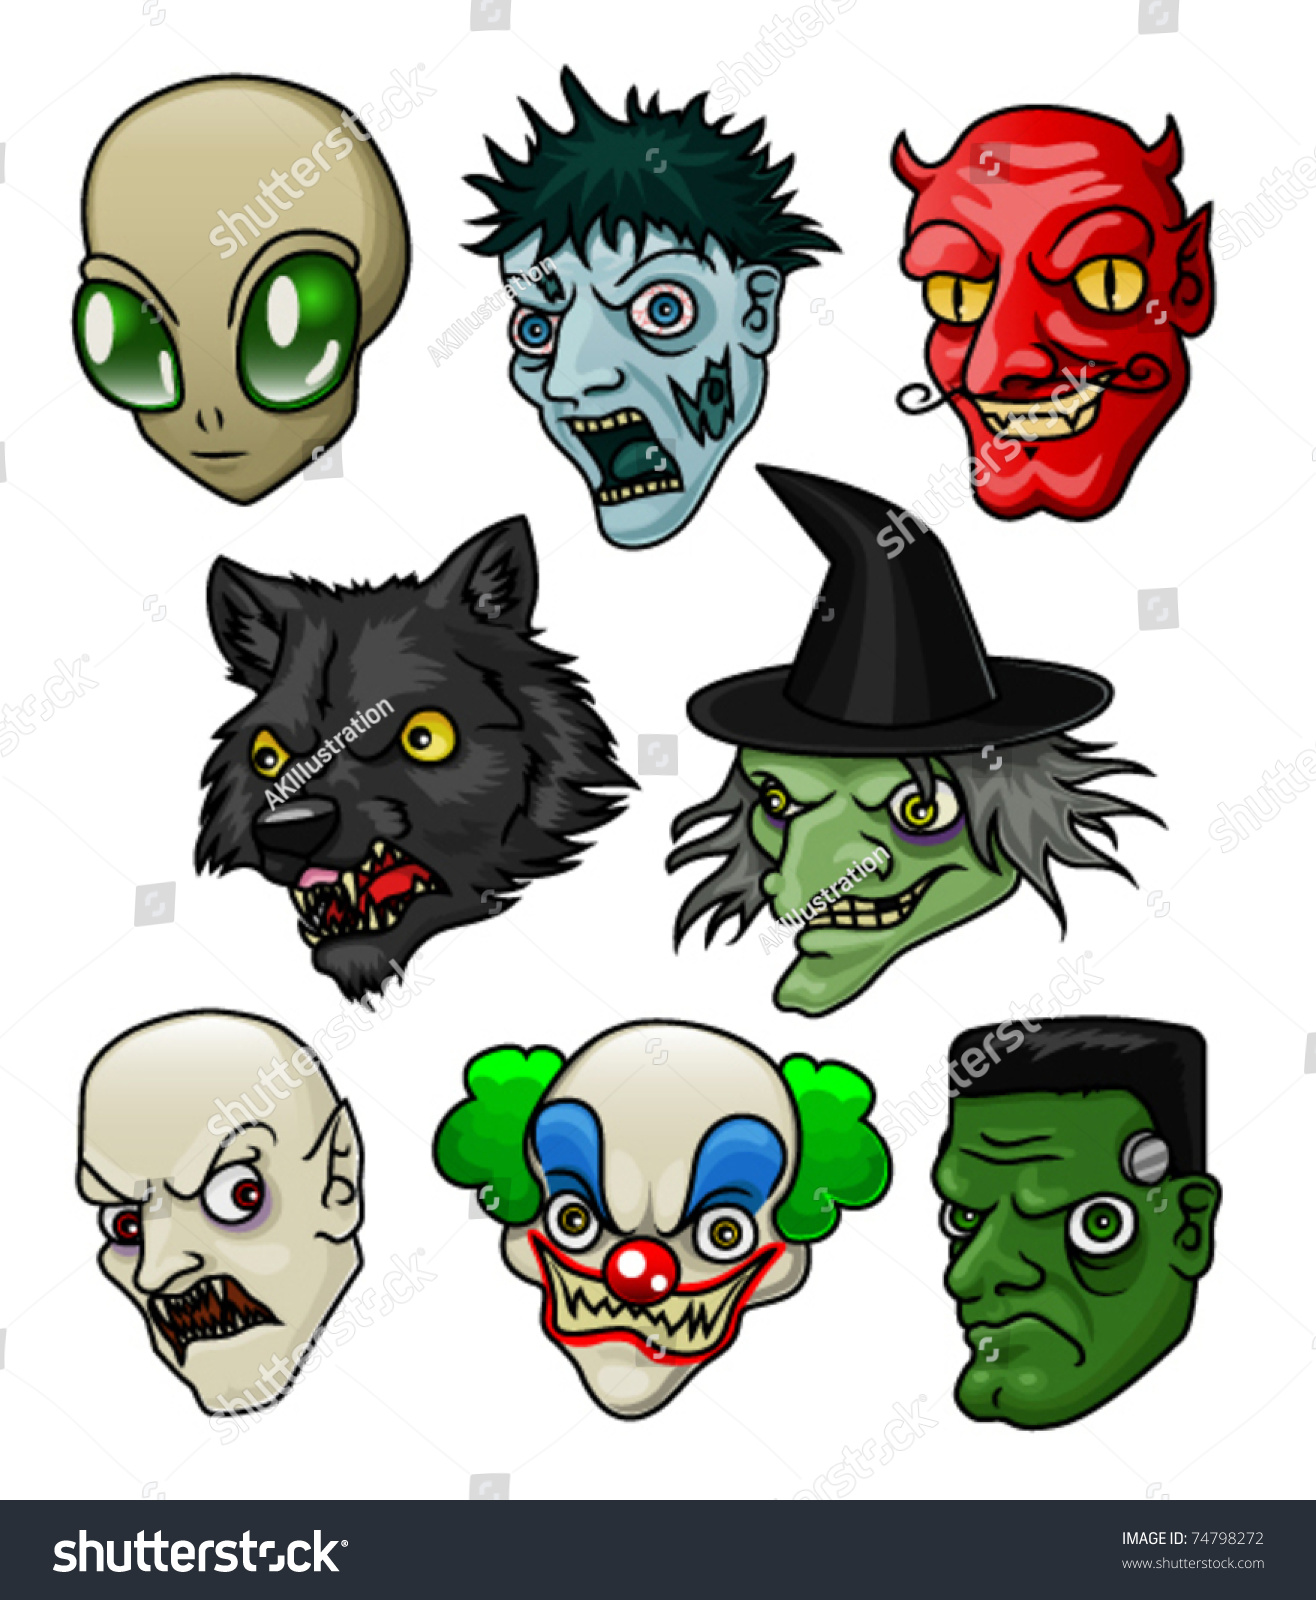 A Collection Of 8 Different Halloween Monsters And ...